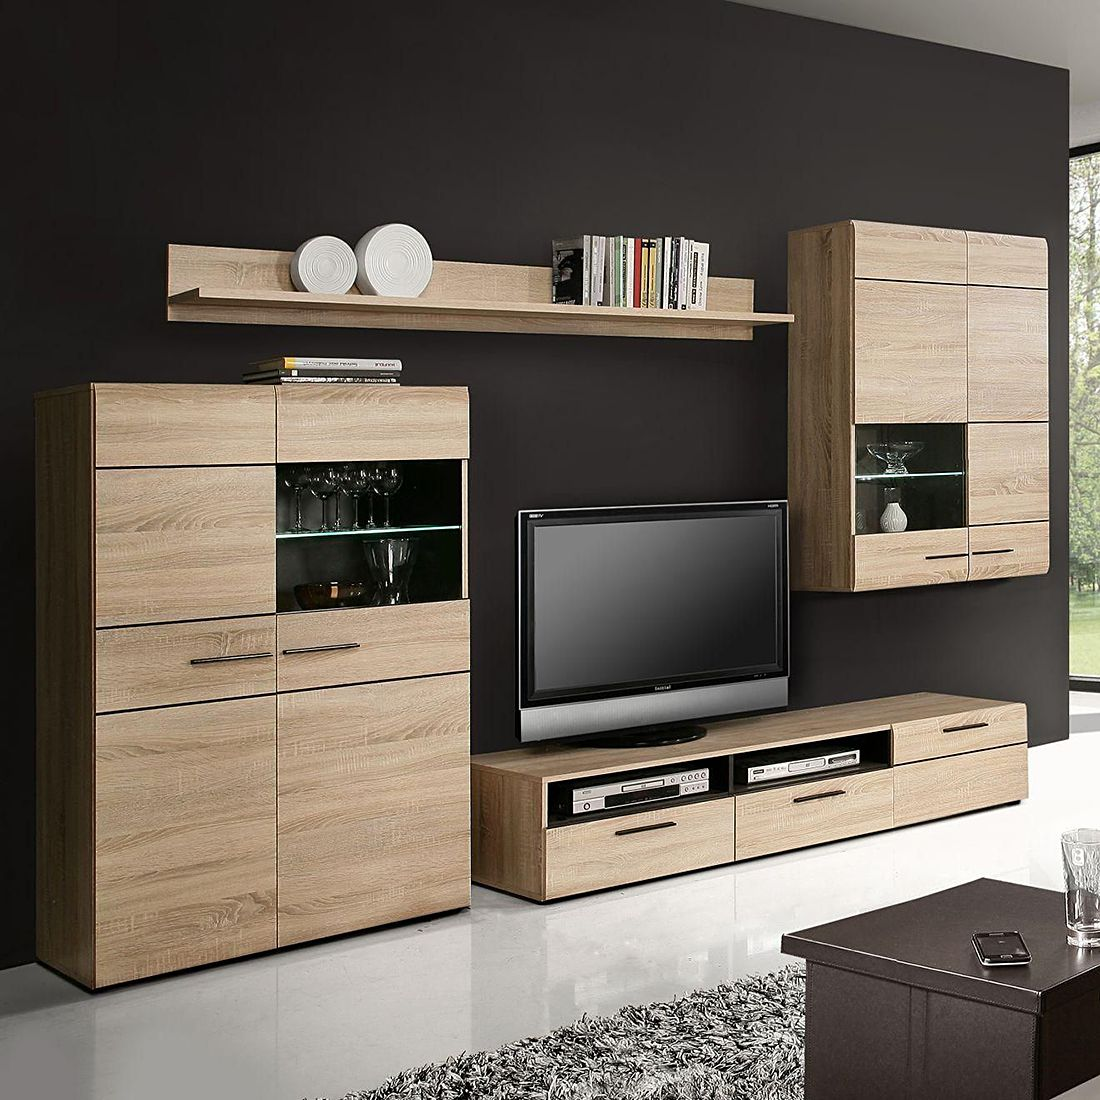 wohnwand nashville 4 teilig sonoma eiche dekor wenge. Black Bedroom Furniture Sets. Home Design Ideas